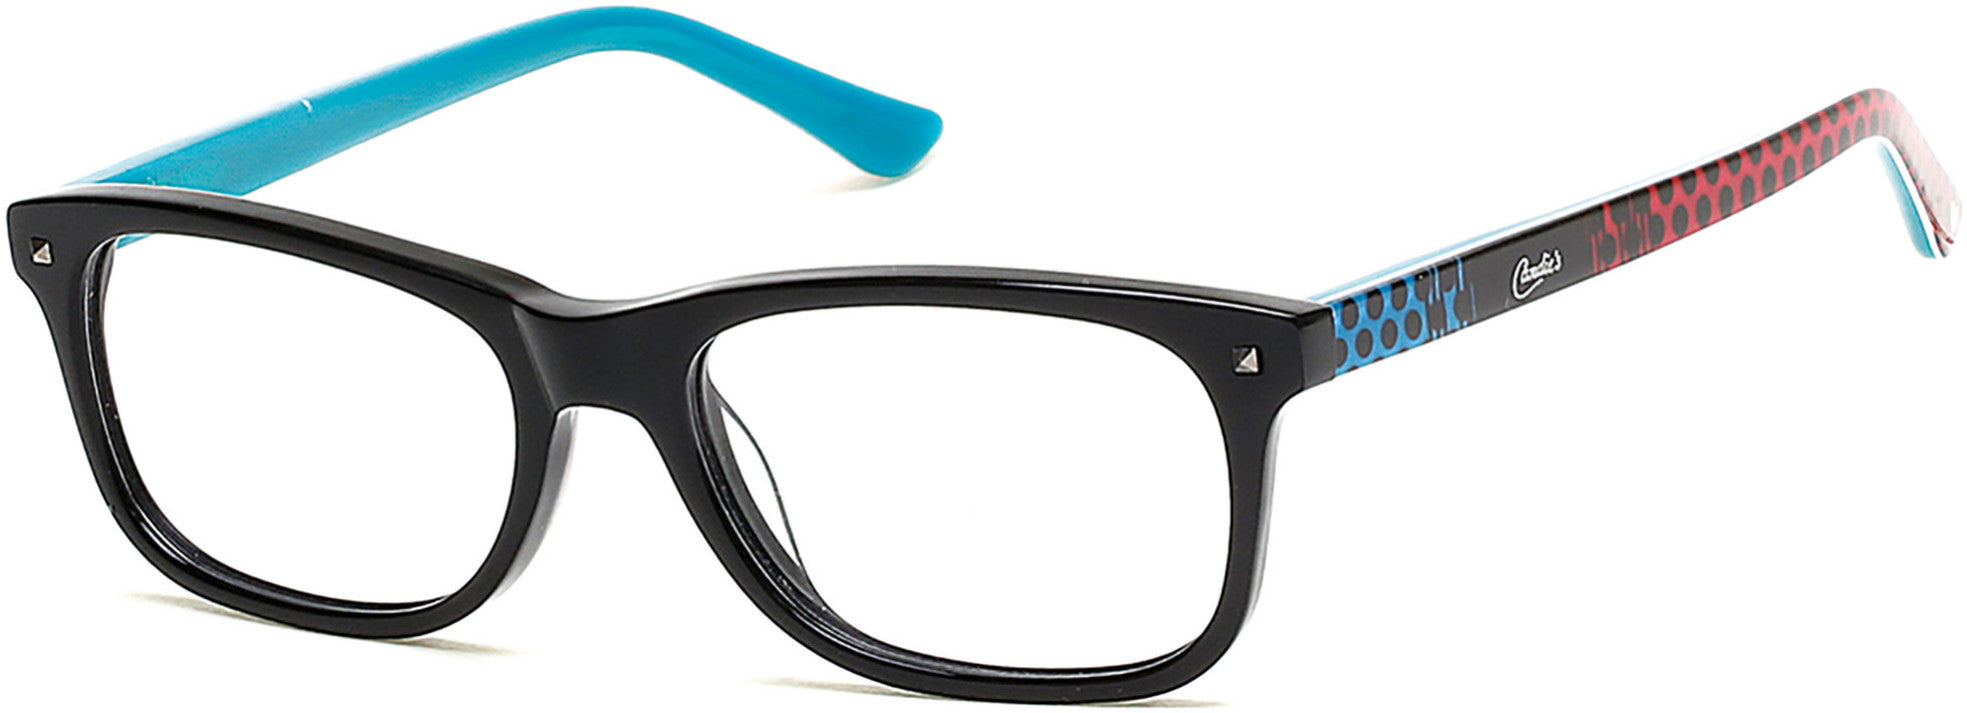 Candies CA0500 Geometric Eyeglasses 005-005 - Black/other